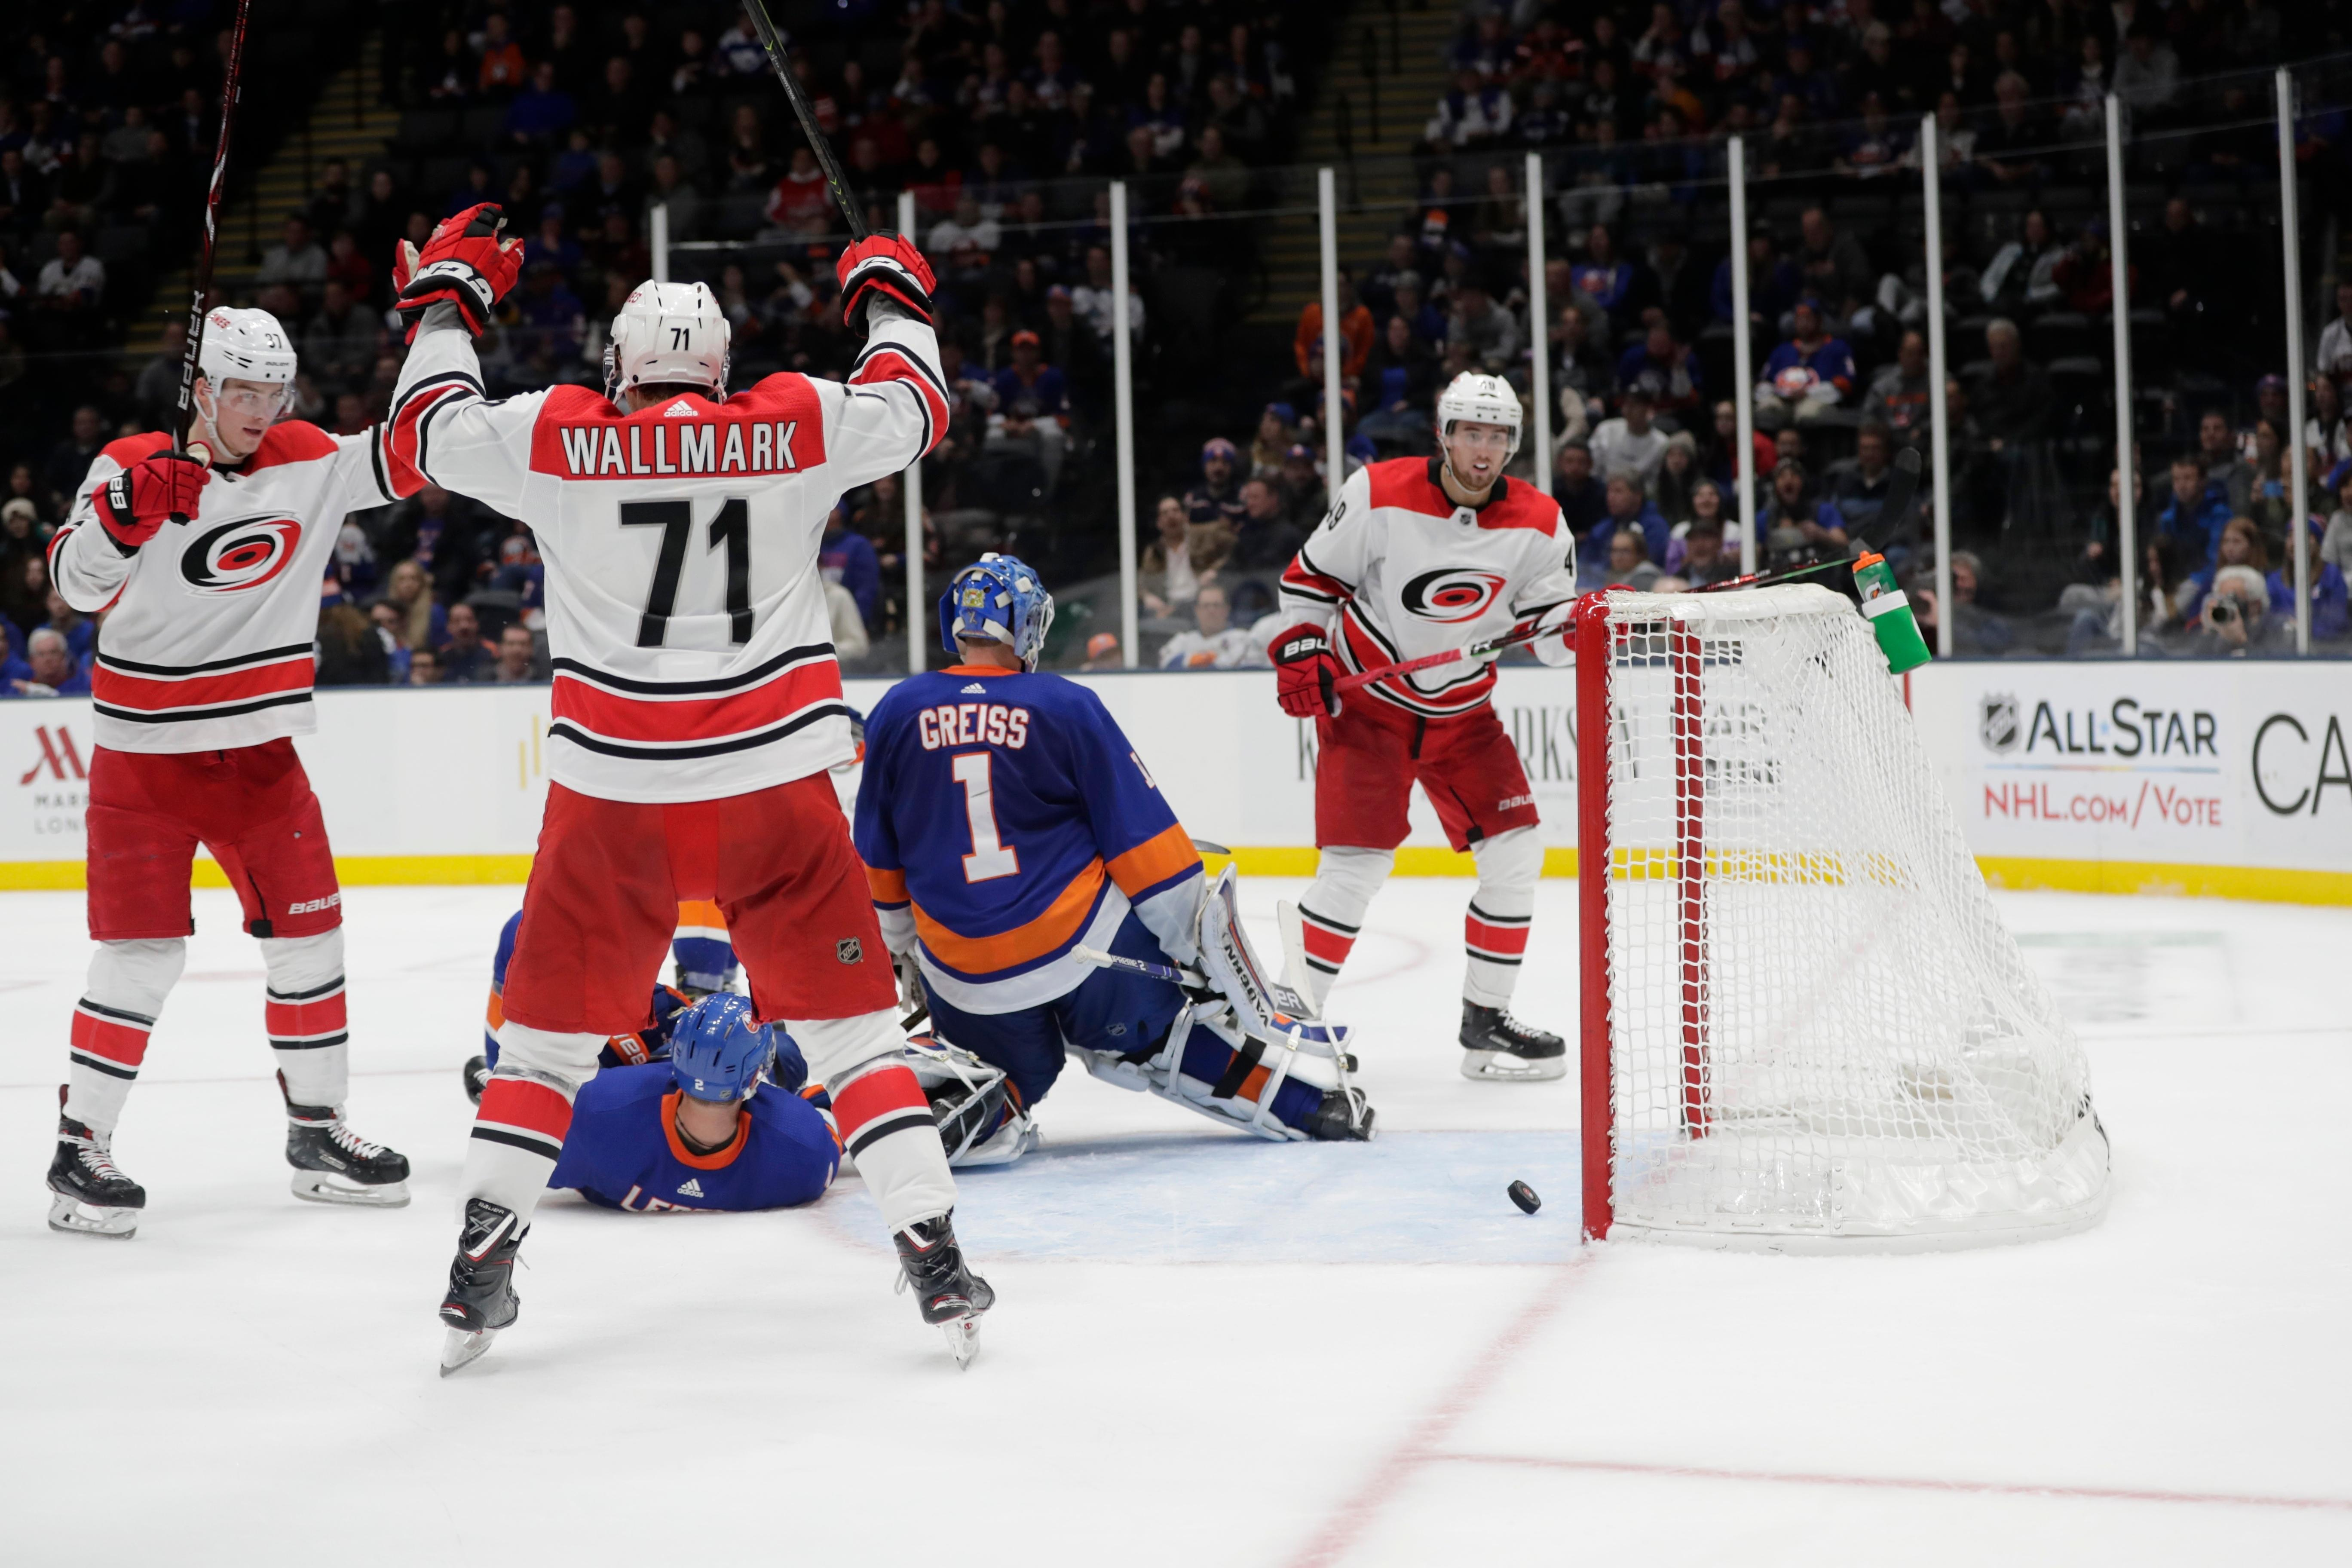 Carolina Hurricanes' Lucas Wallmark (71) celebrates with teammates after a shot by Jaccob Slavin got past New York Islanders goaltender Thomas Greiss (1) for a goal during the third period of an NHL hockey game Tuesday, Jan. 8, 2019, in New York. The Hurricanes won 4-3. (AP Photo/Frank Franklin II)